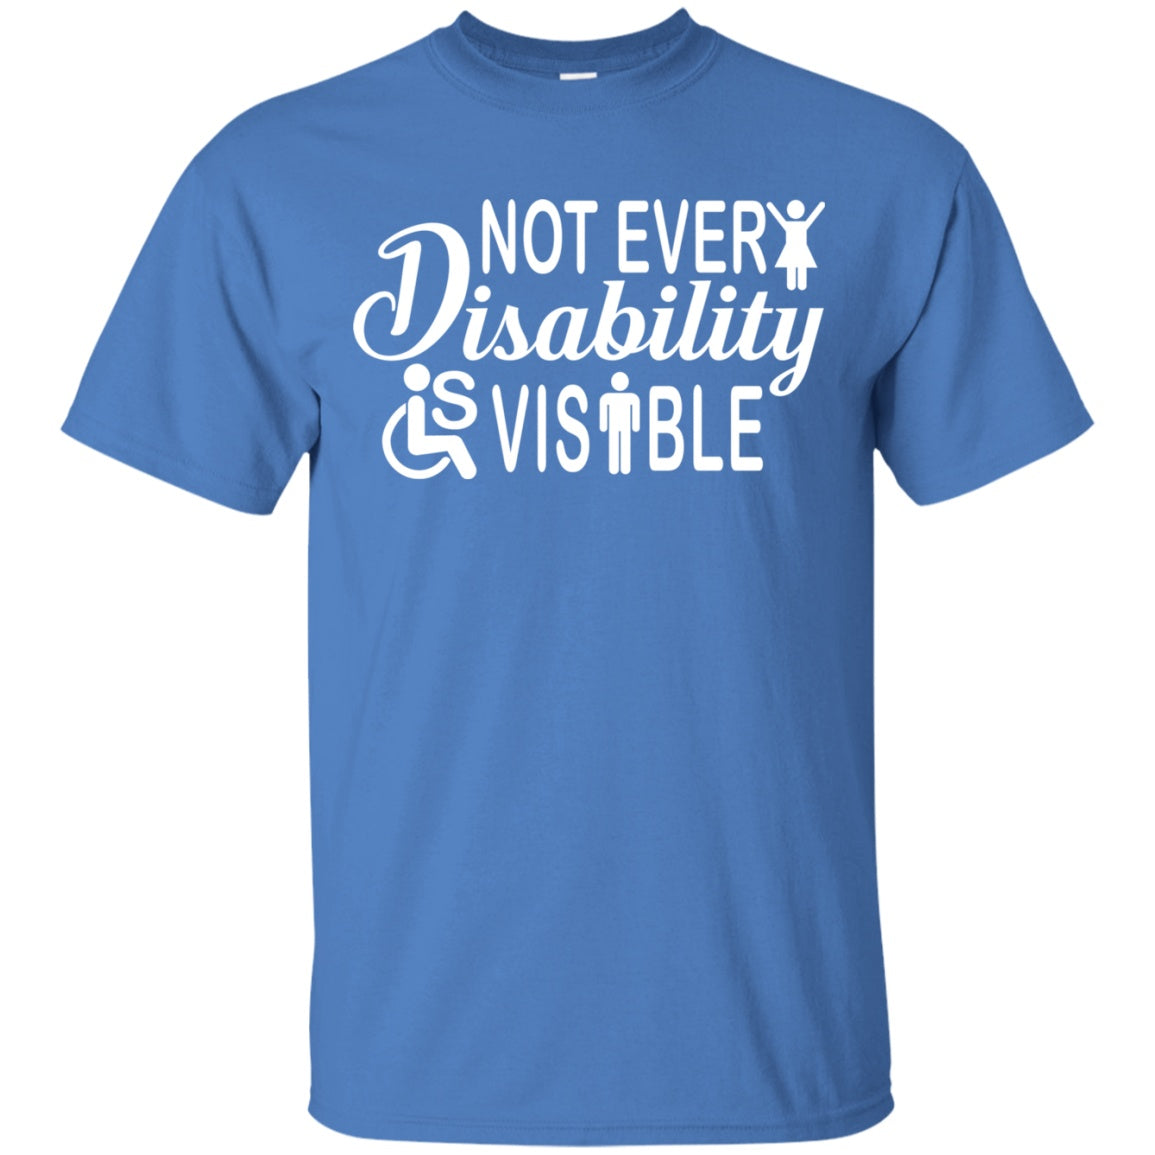 Invisible Disability with Icons Unisex Shirt - The Unchargeables